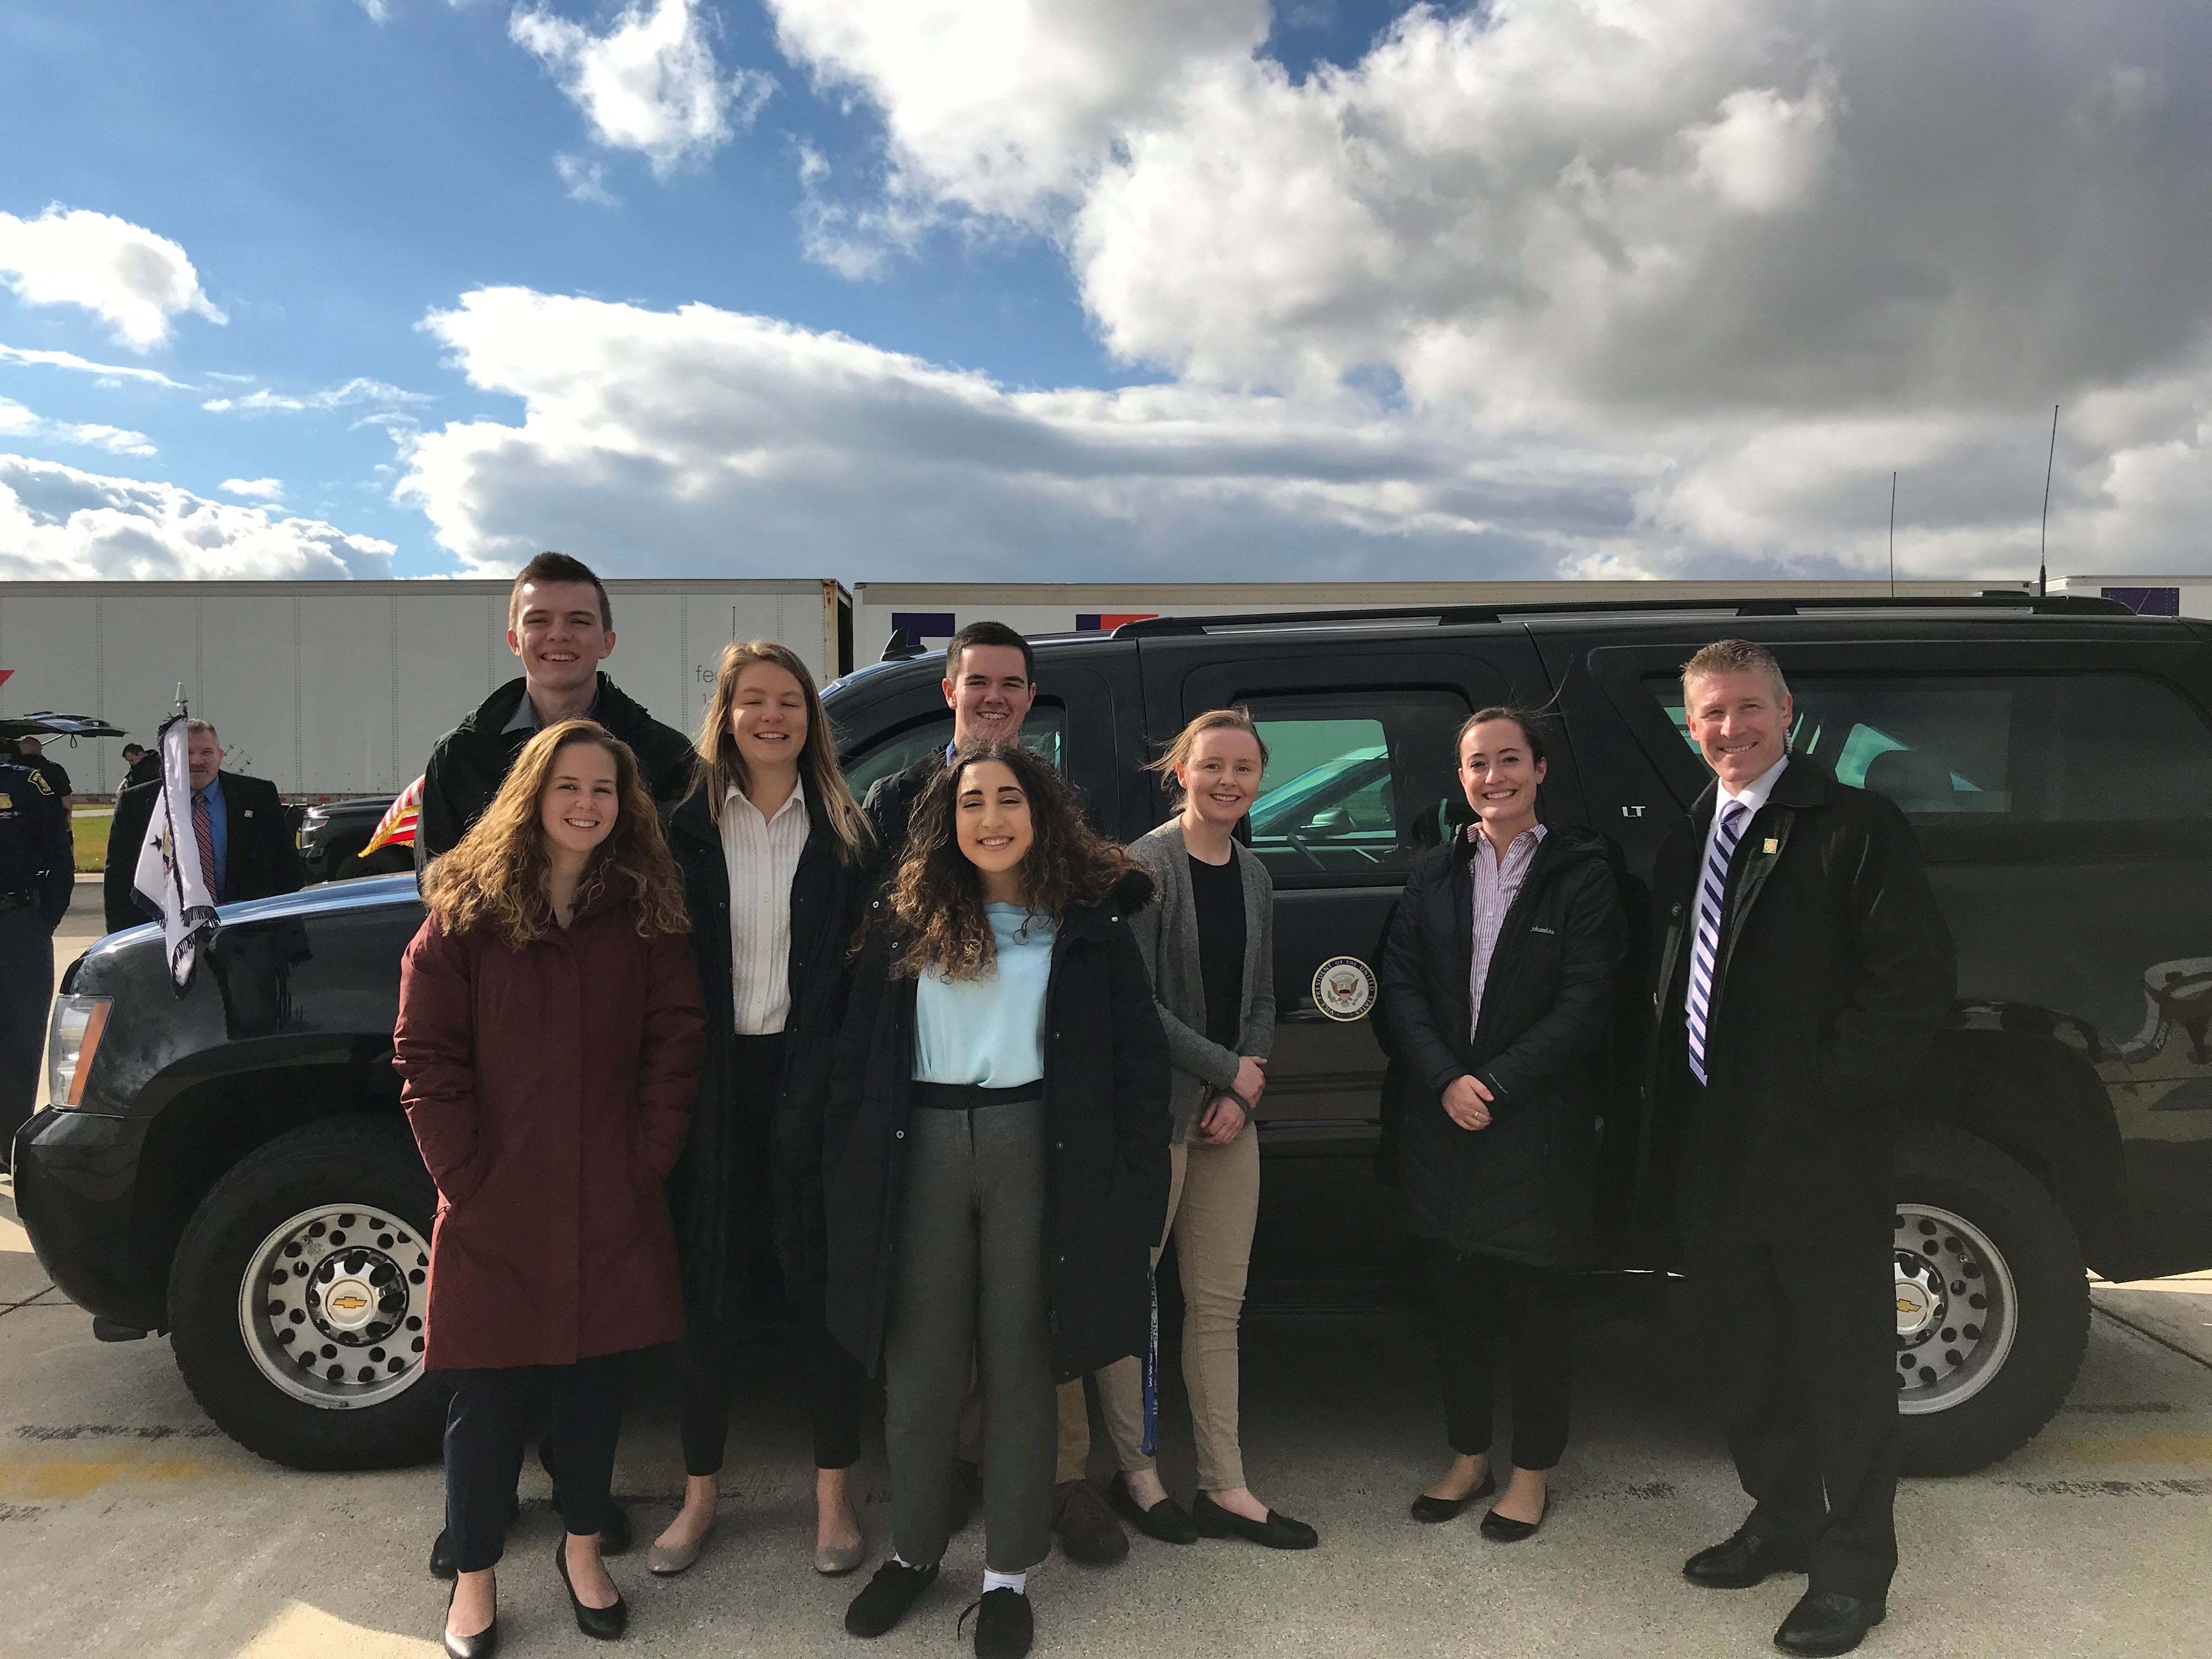 U.S. Secret Service Visit a Hit with Student Leaders